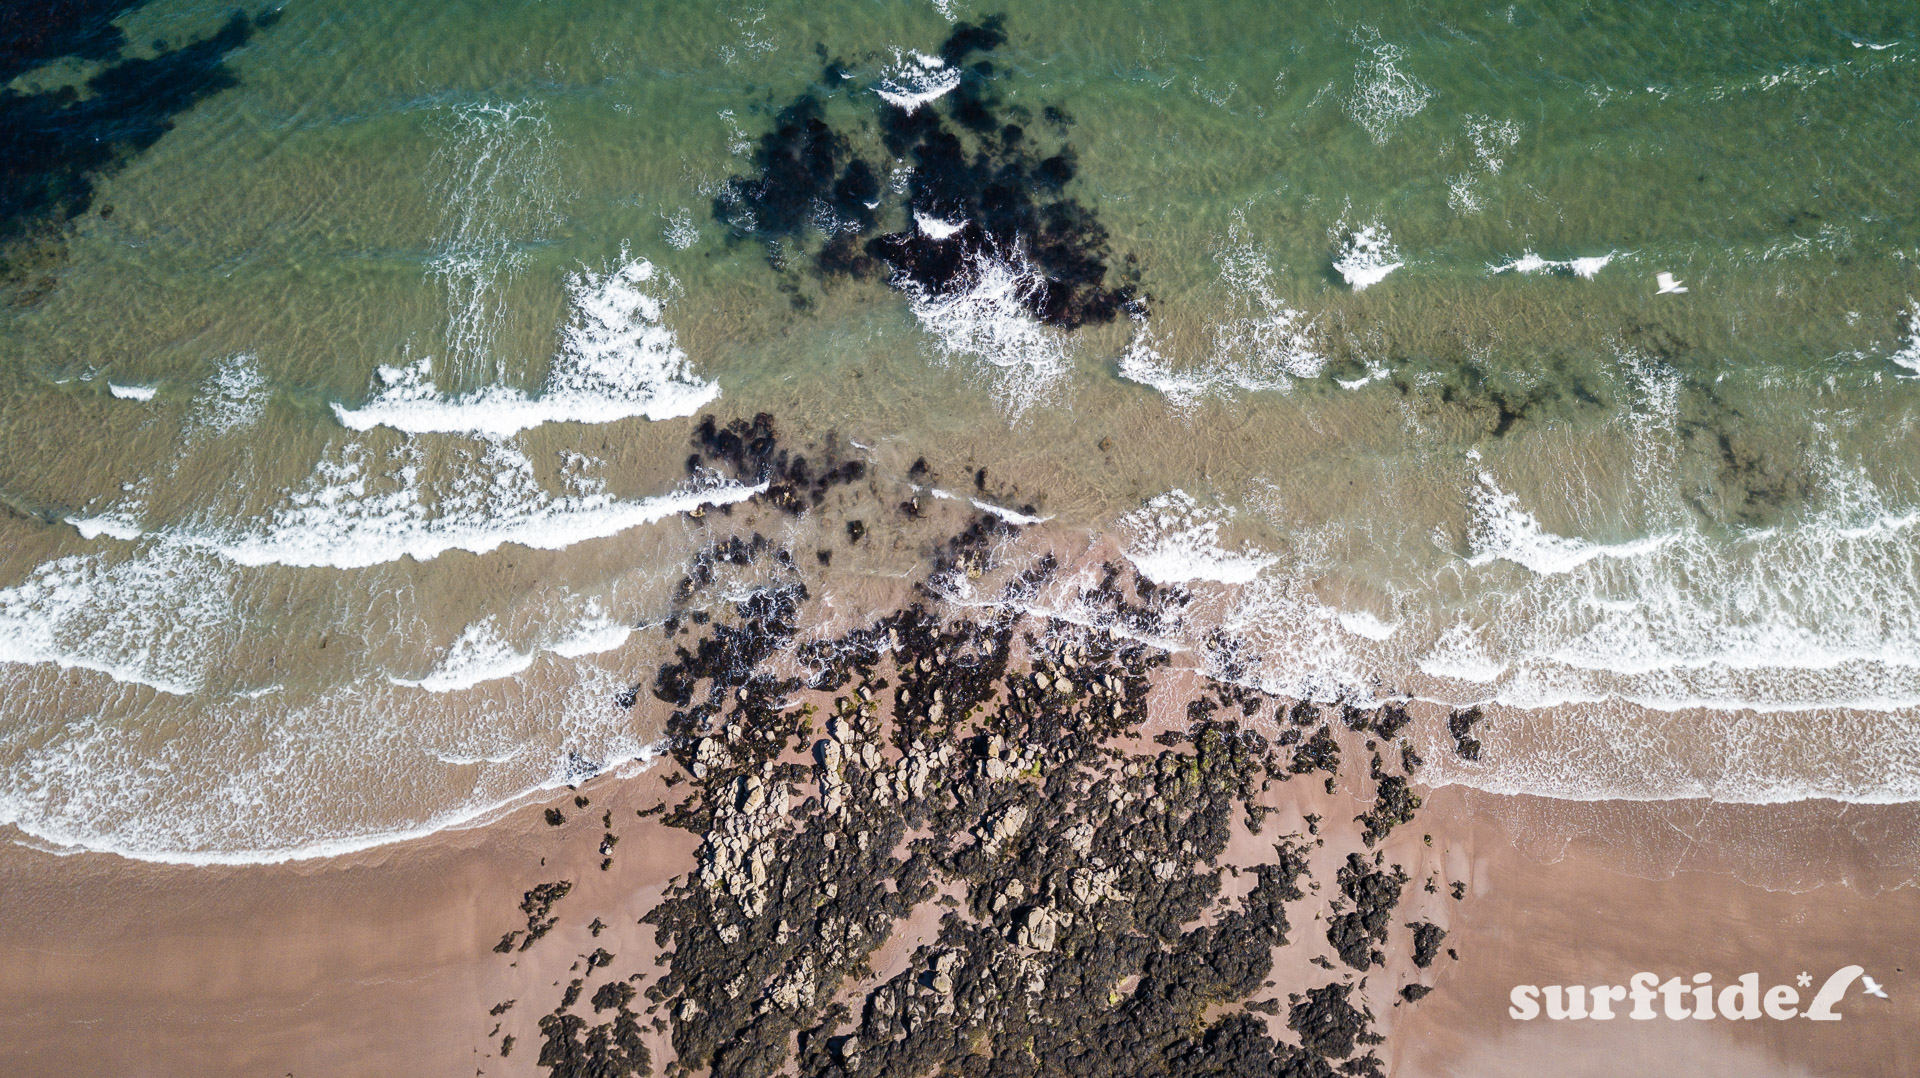 Aerial/Drone photo of Macharioch Beach, Argyll, Scotland